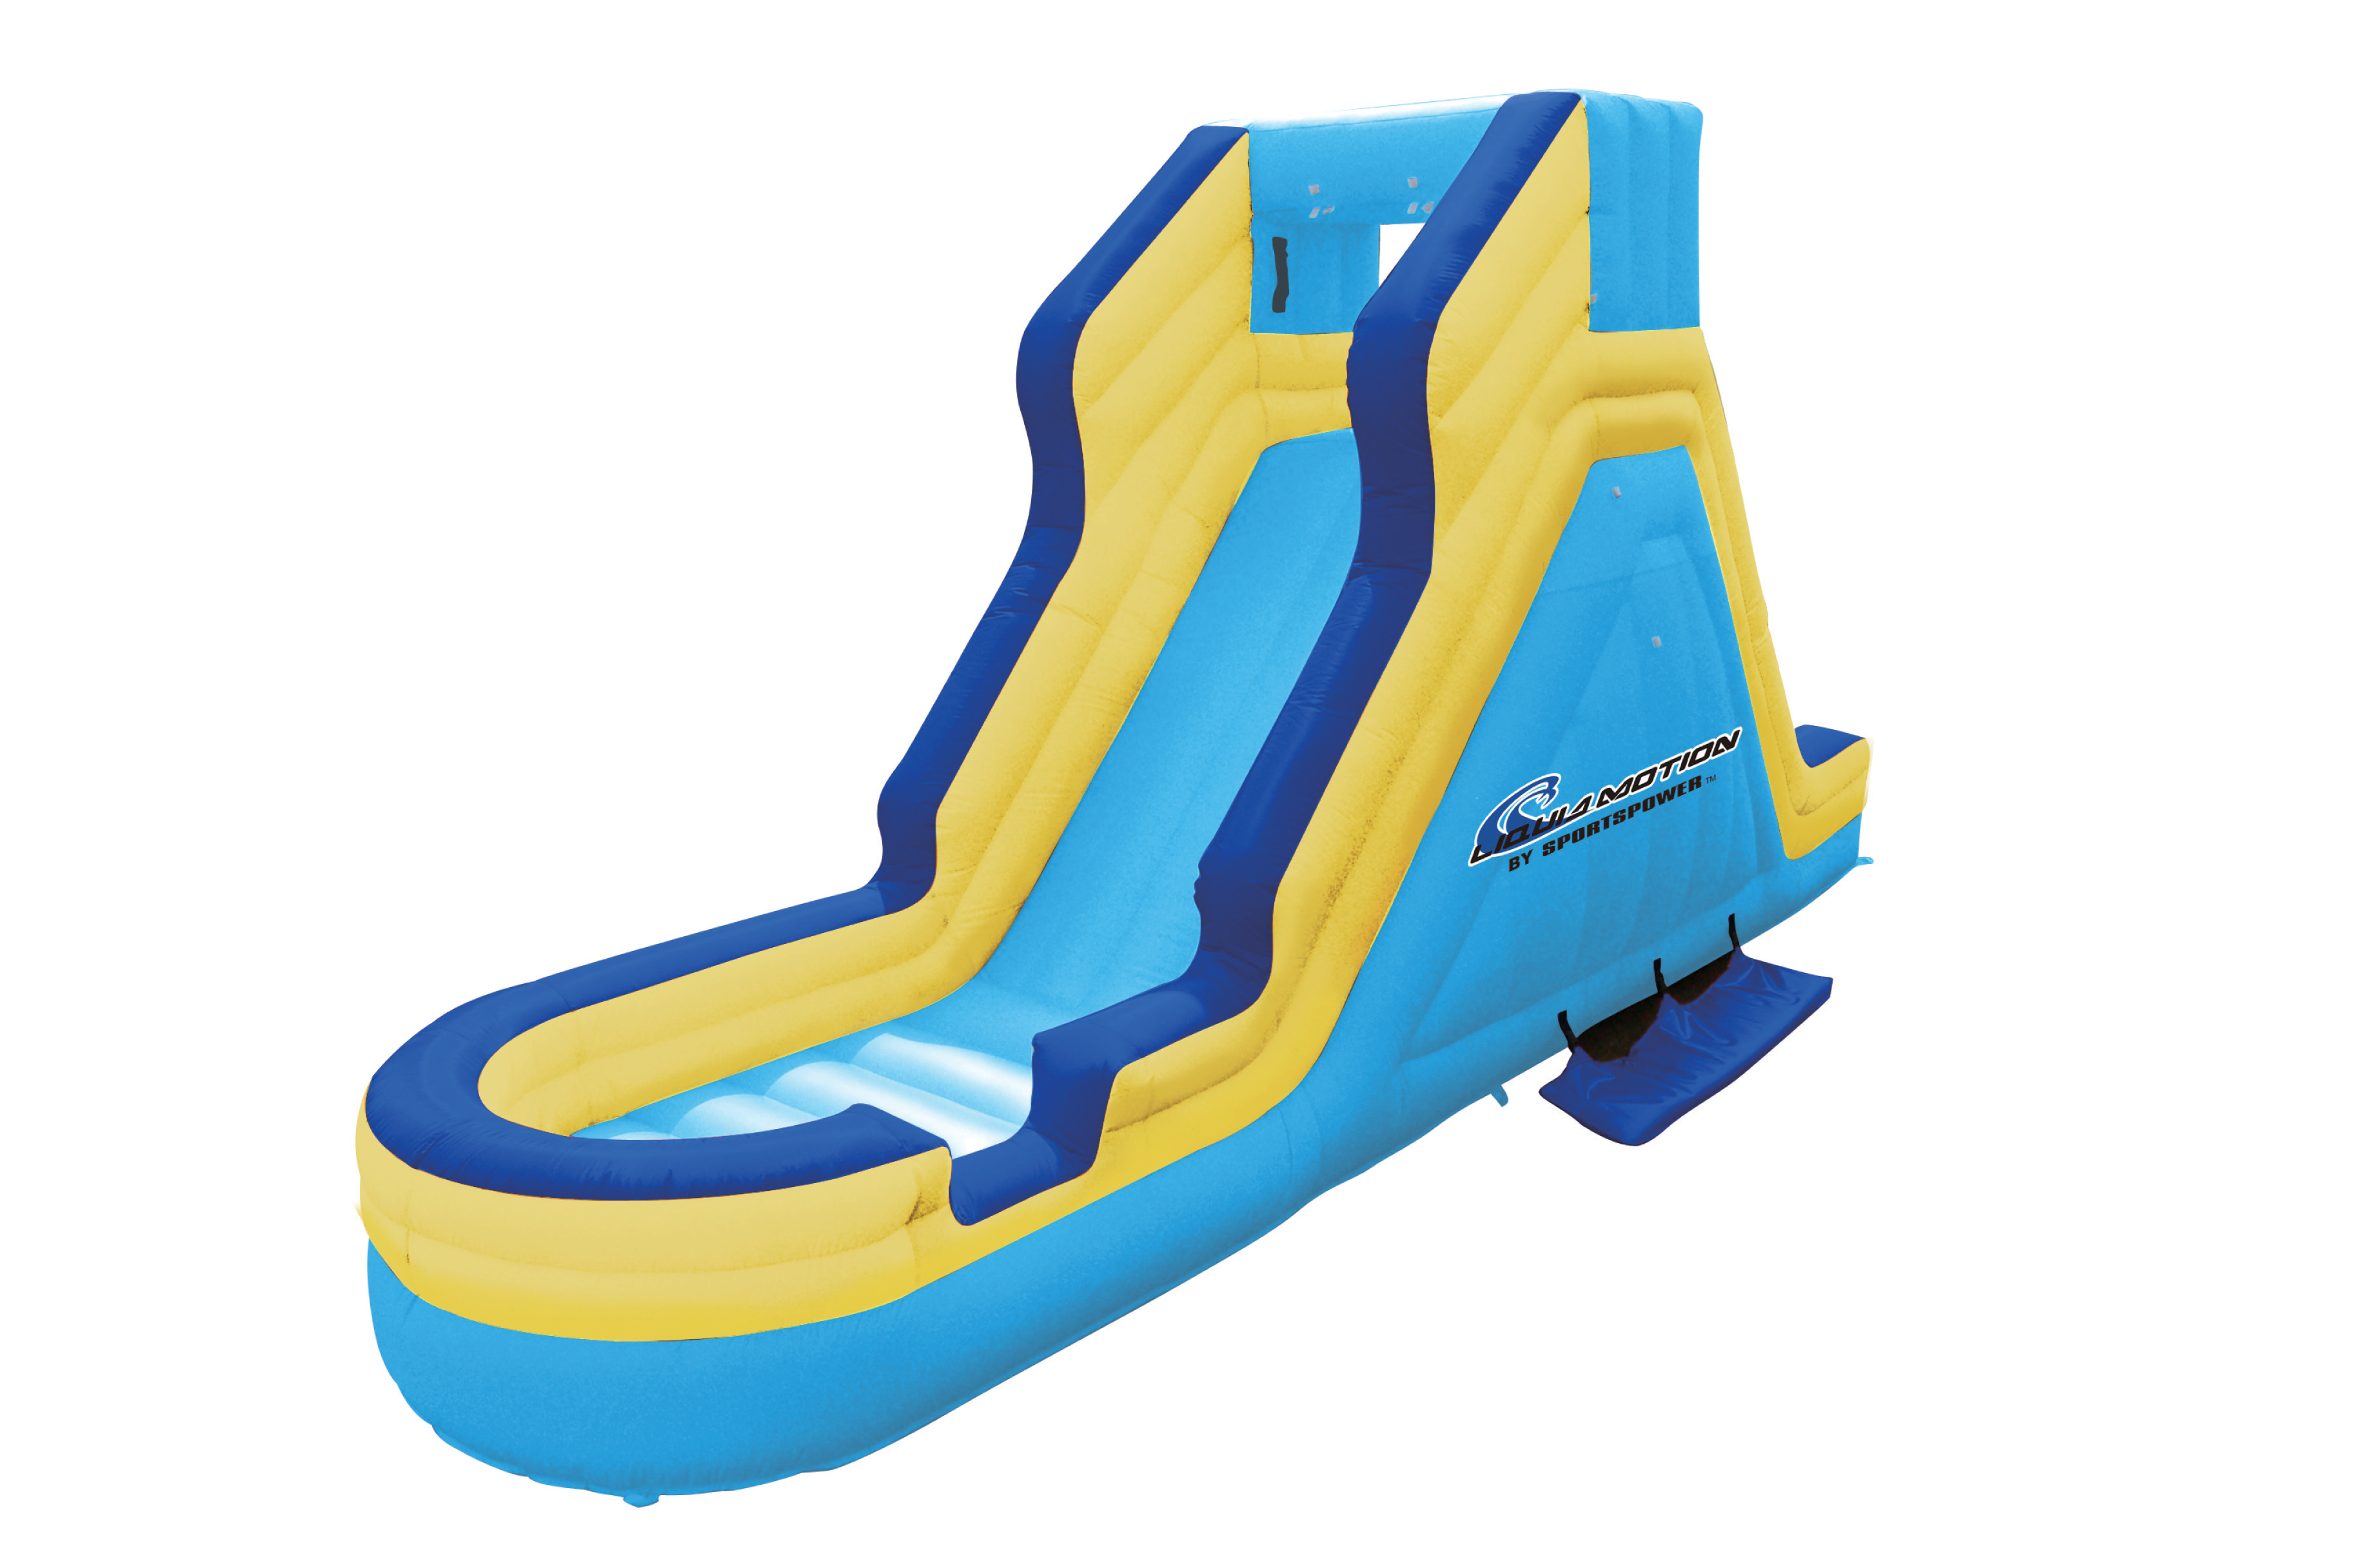 Recalled Sportspower Liquid Motion waterslide